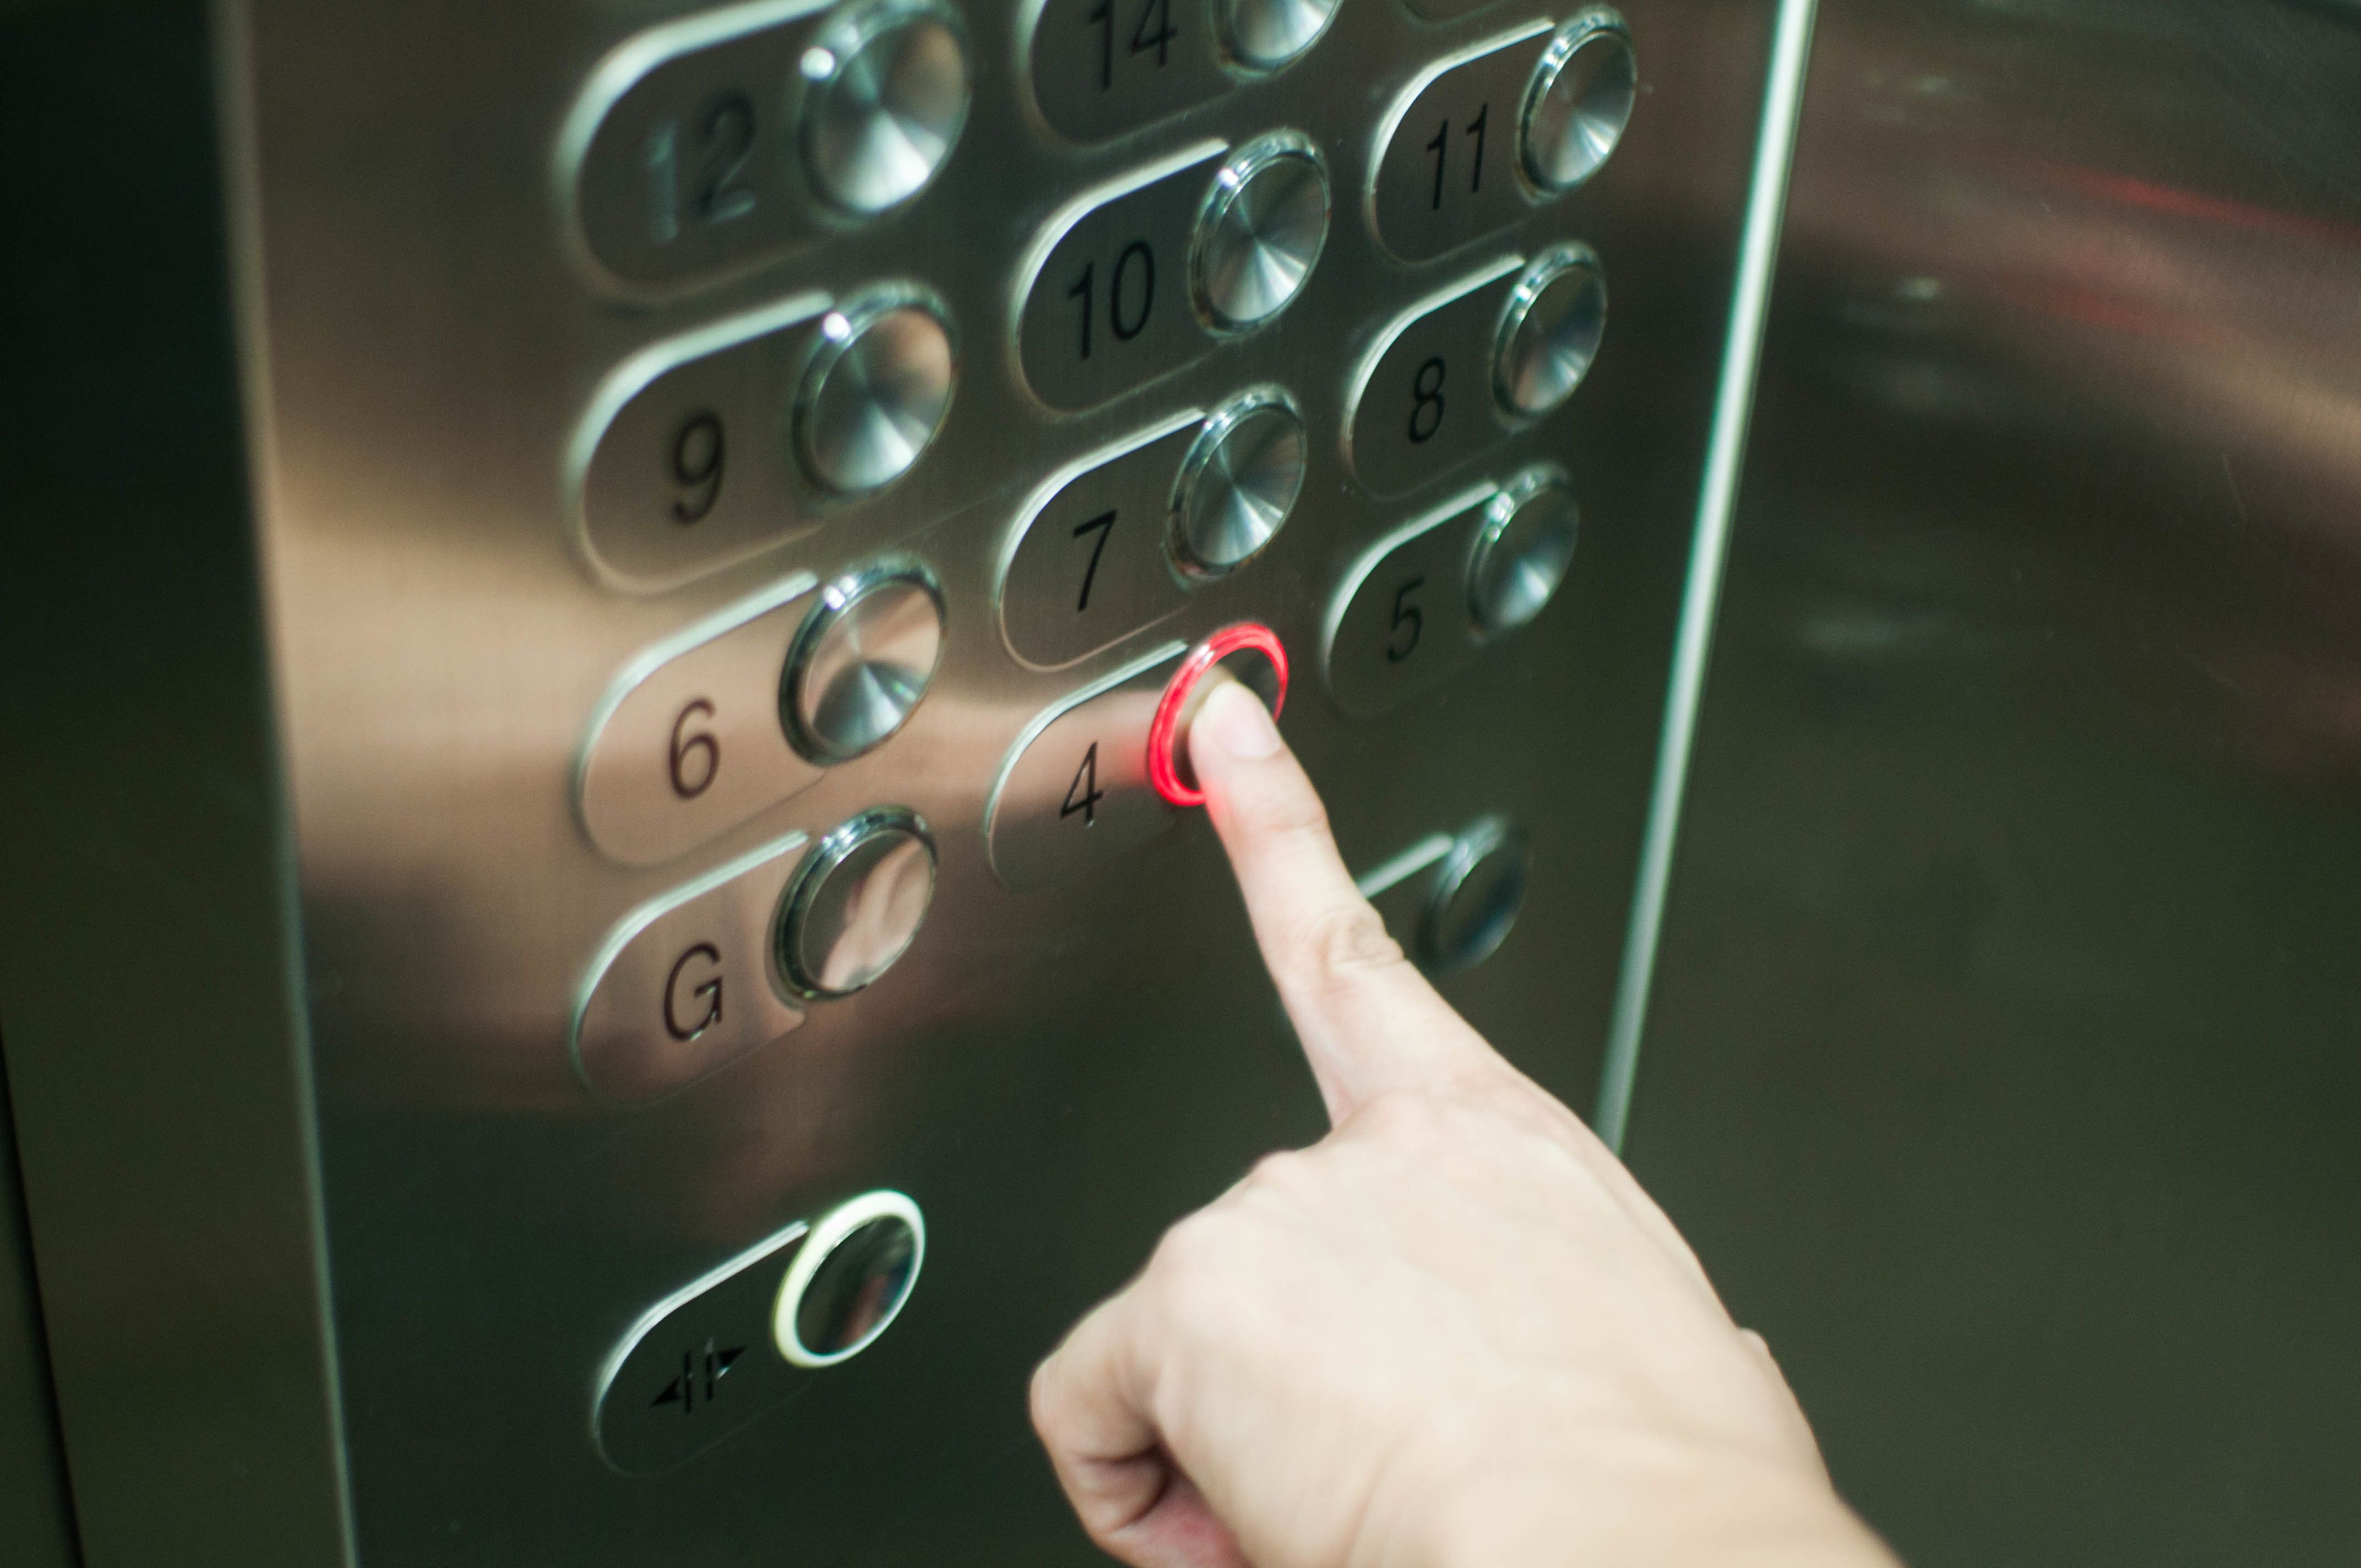 A person is pressing the elevator button with left hand